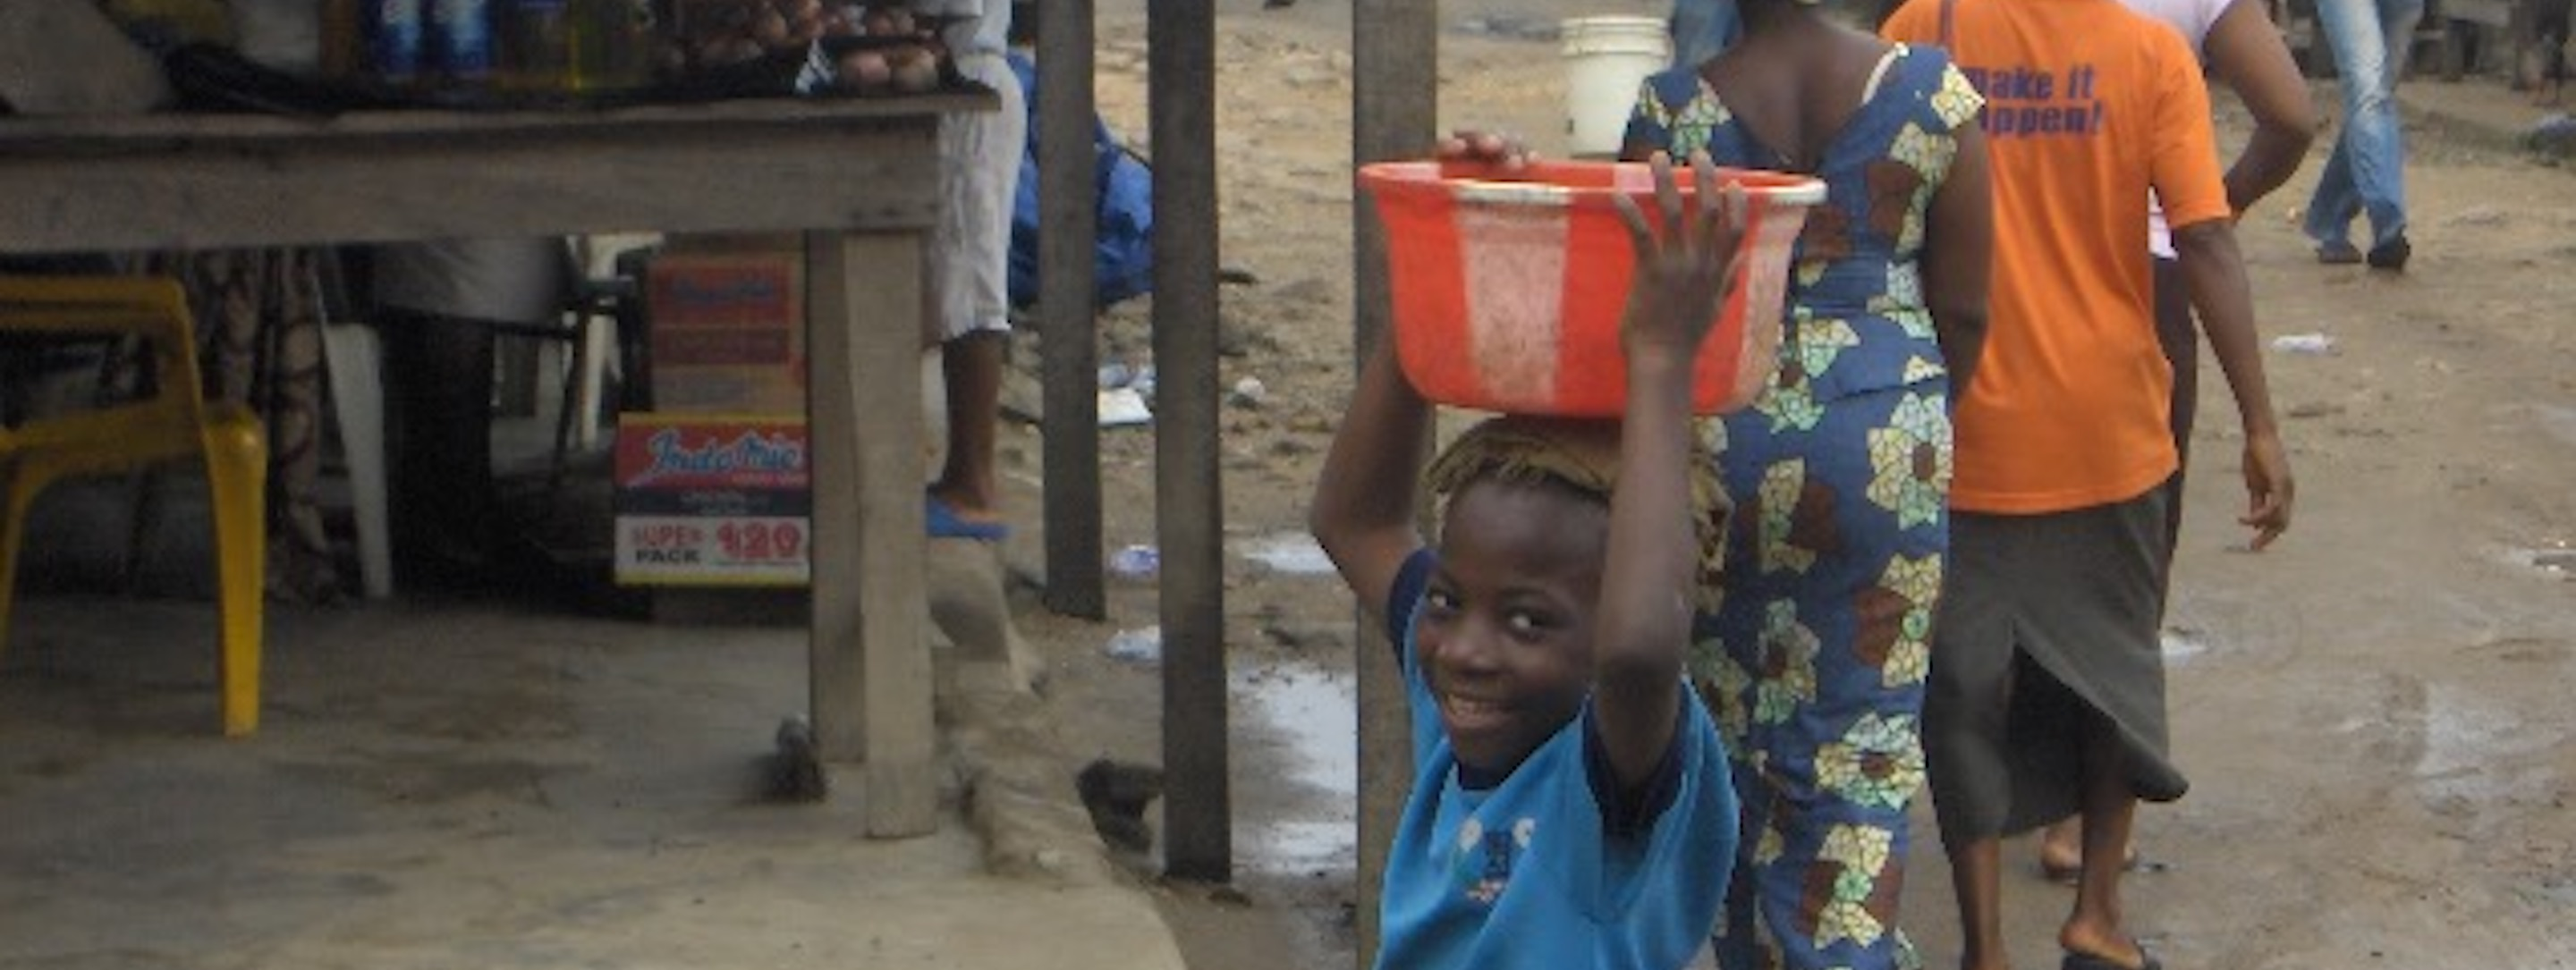 young boy smiling at the camera in nigeria